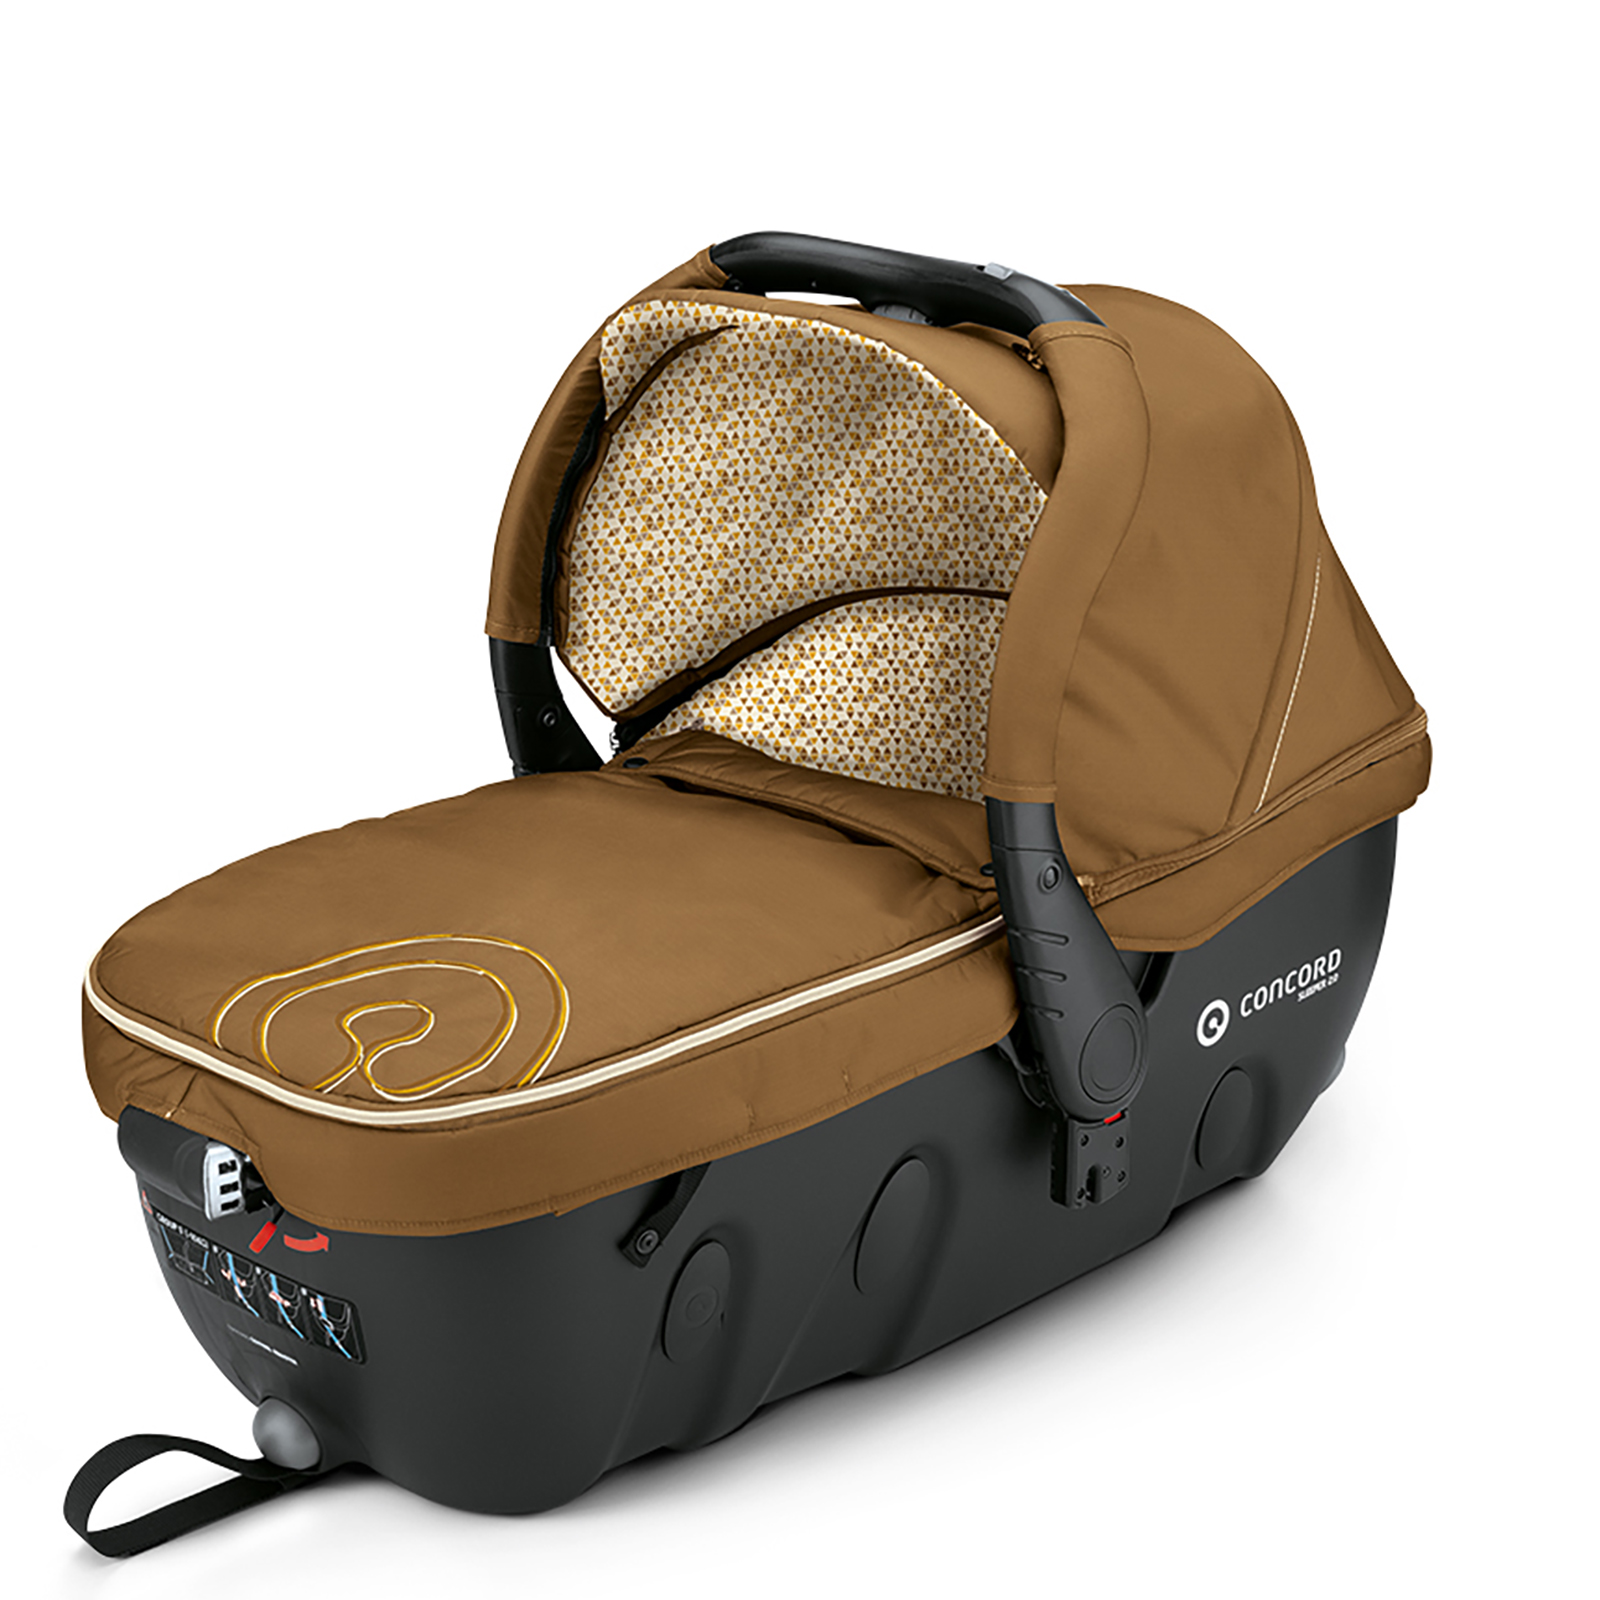 Concord Wander Travel System Pram Car Seat In